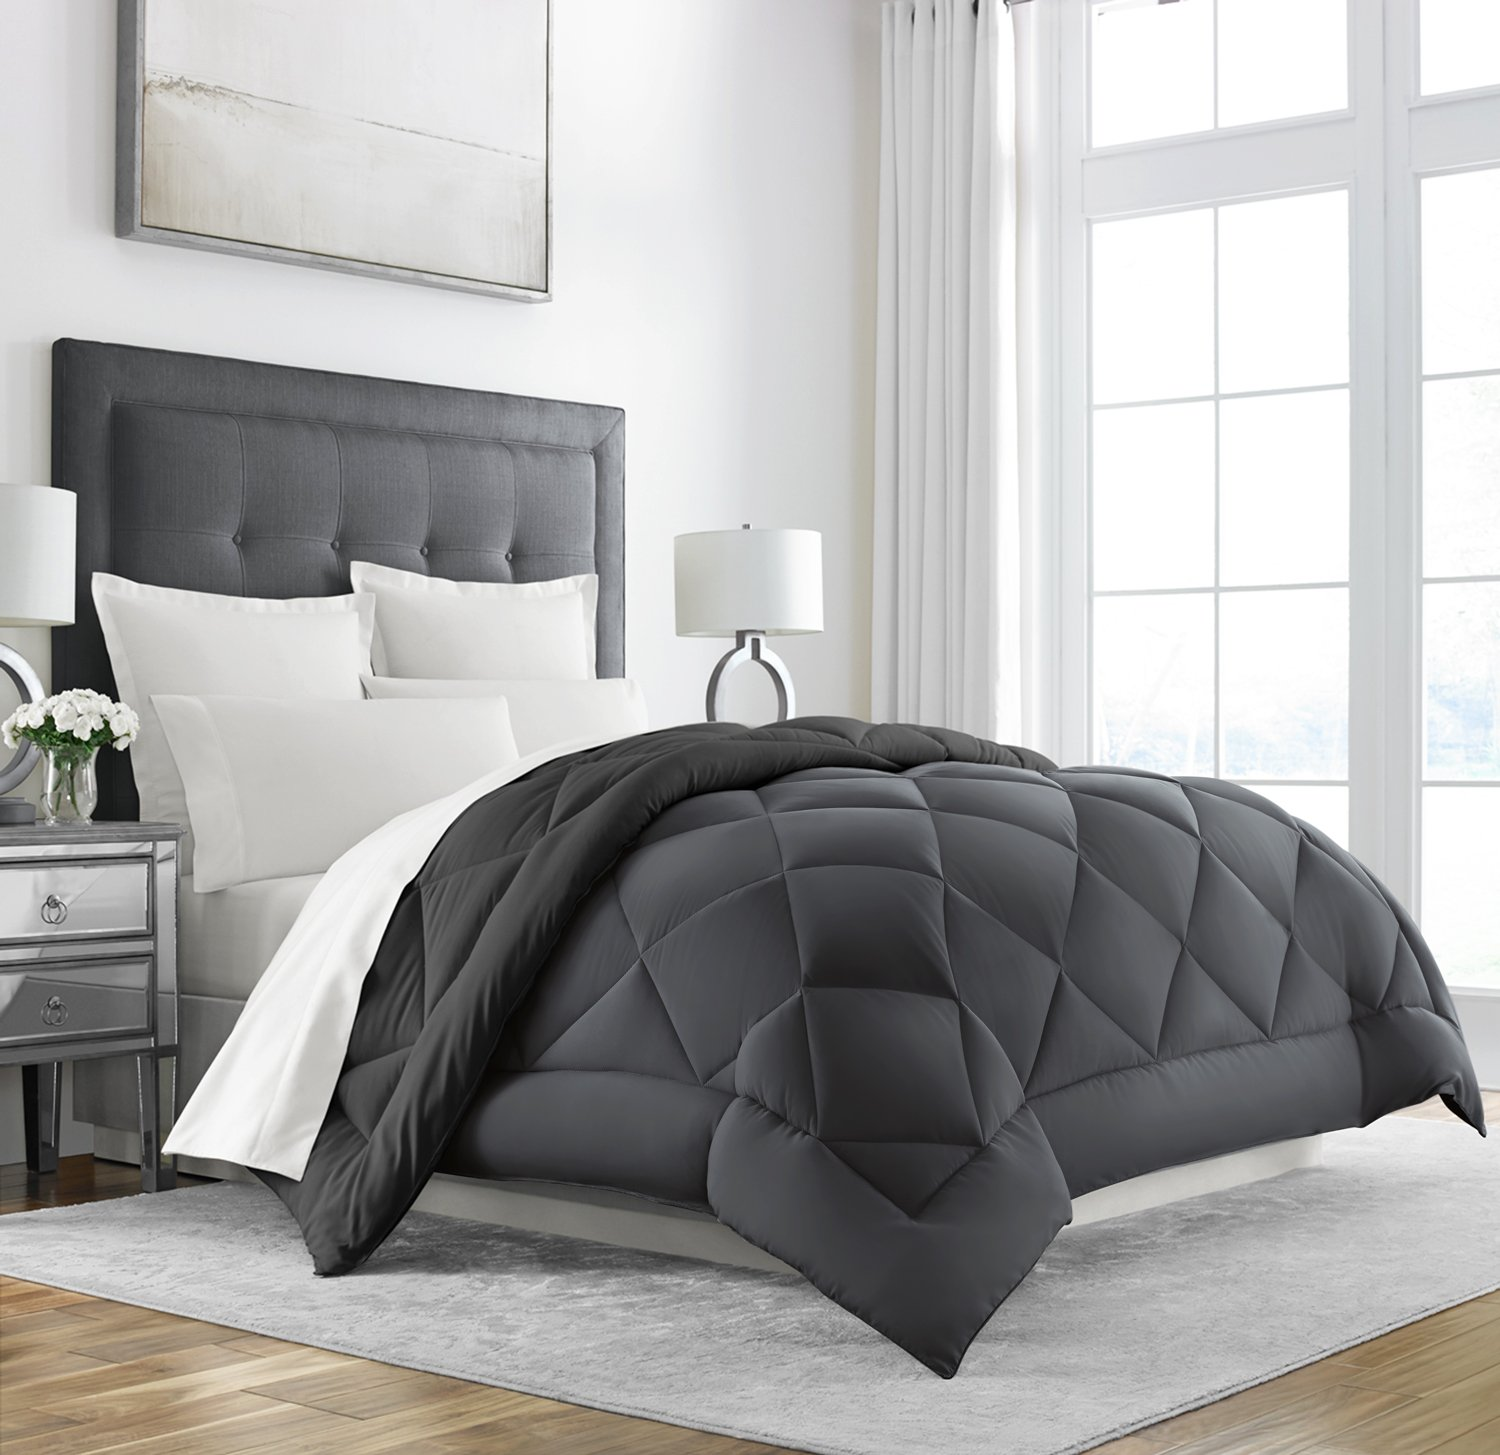 filled goose bedroom simple size comforters duck european blue real super comfortable insert best comforter duvet discount most down lightweight feather king quilt full grey